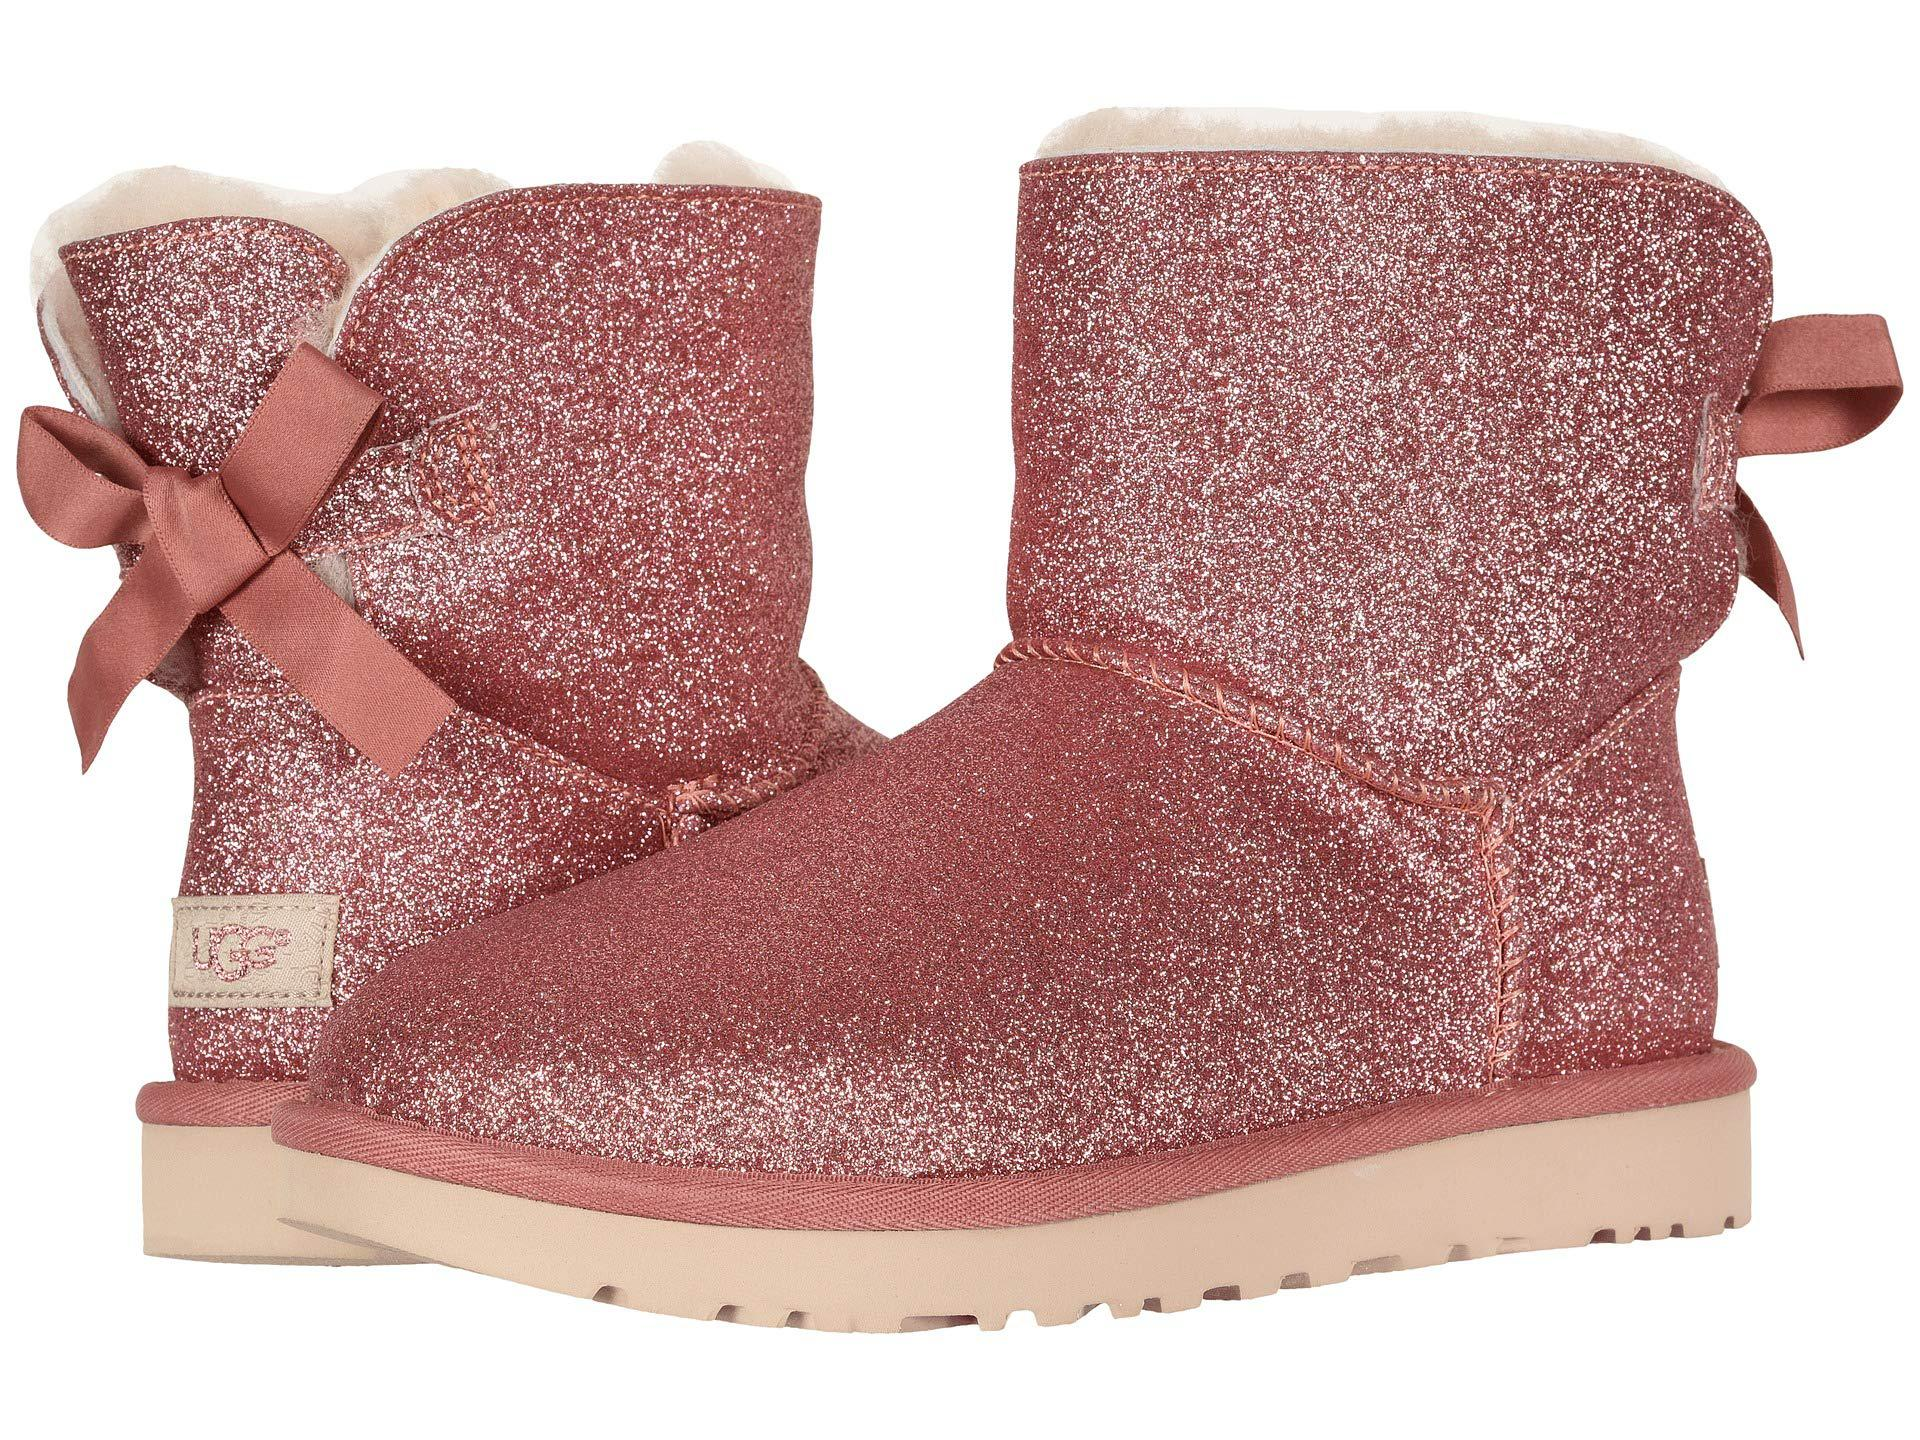 5a18de7b5a0 Ugg Pink Mini Bailey Bow Sparkle Boot (silver) Women's Pull-on Boots